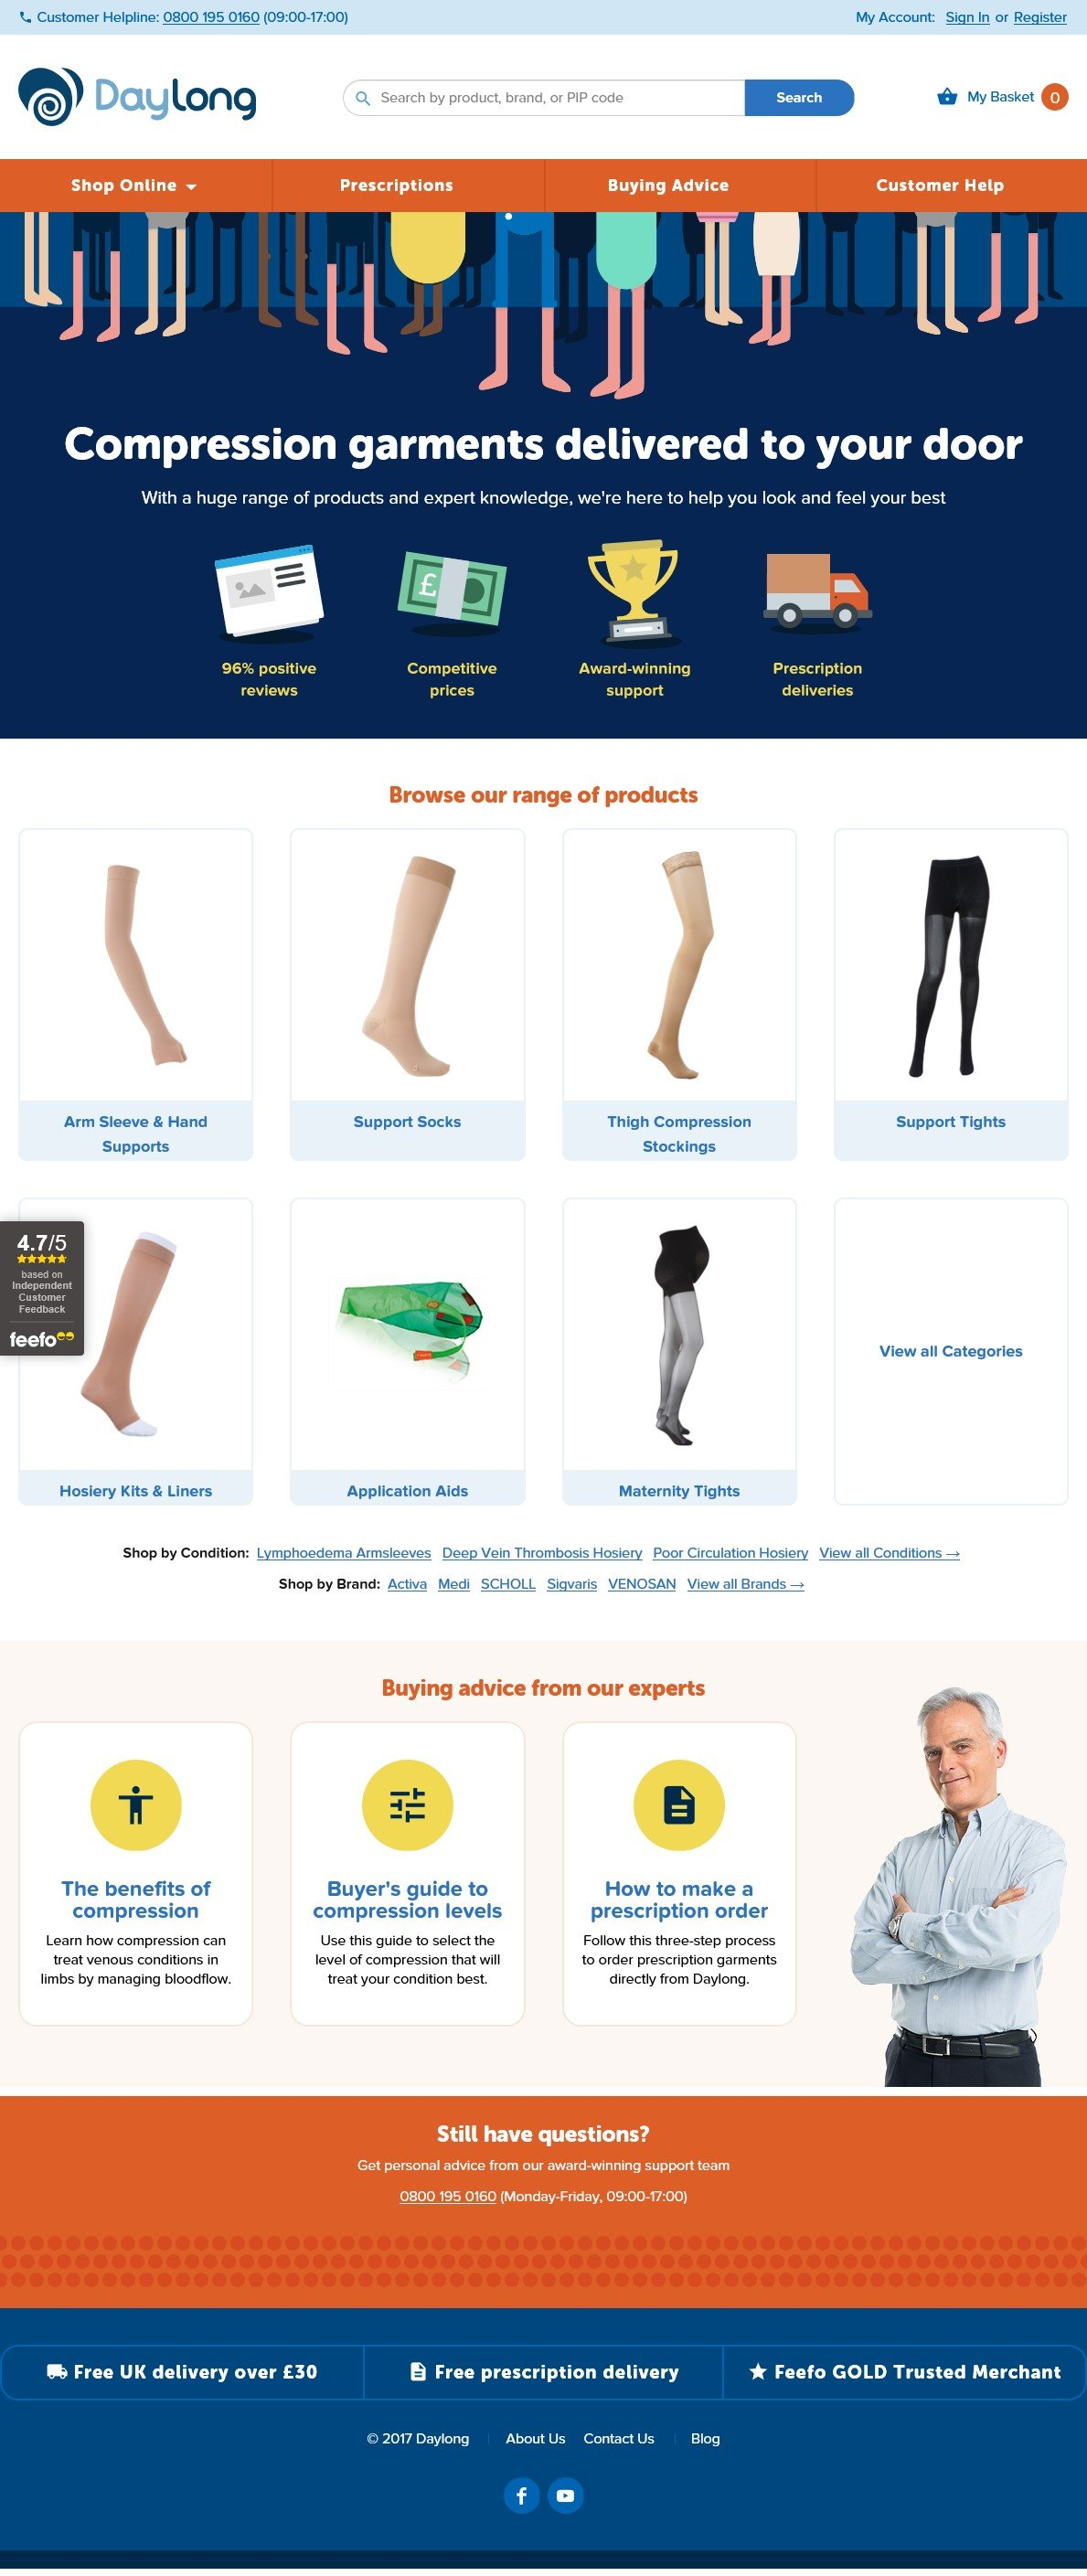 Daylong specialize in Compression Support Stockings, Tights, Socks, Maternity Tights, Accessories and some Anti Cellulite Hosiery